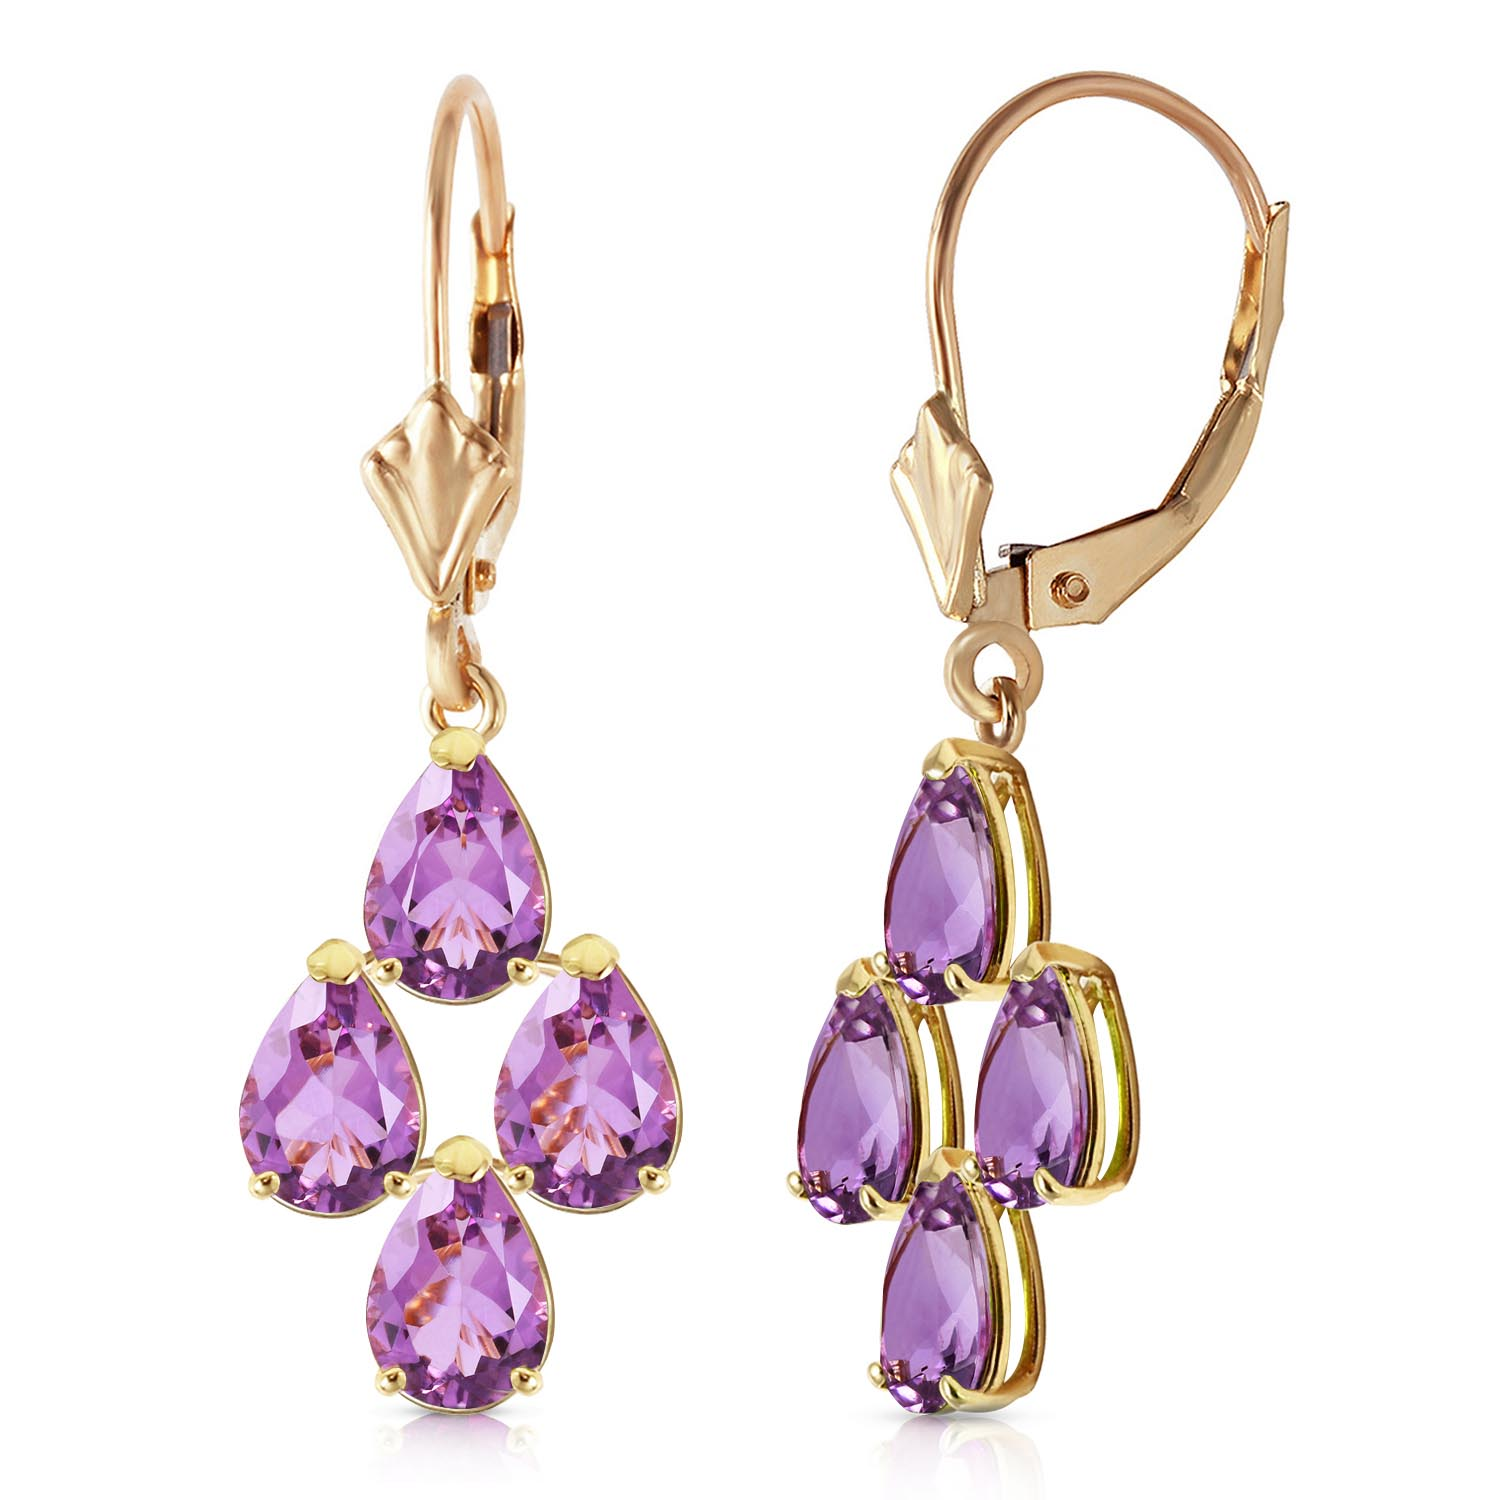 Amethyst Drop Earrings 3.0ctw in 9ct Gold